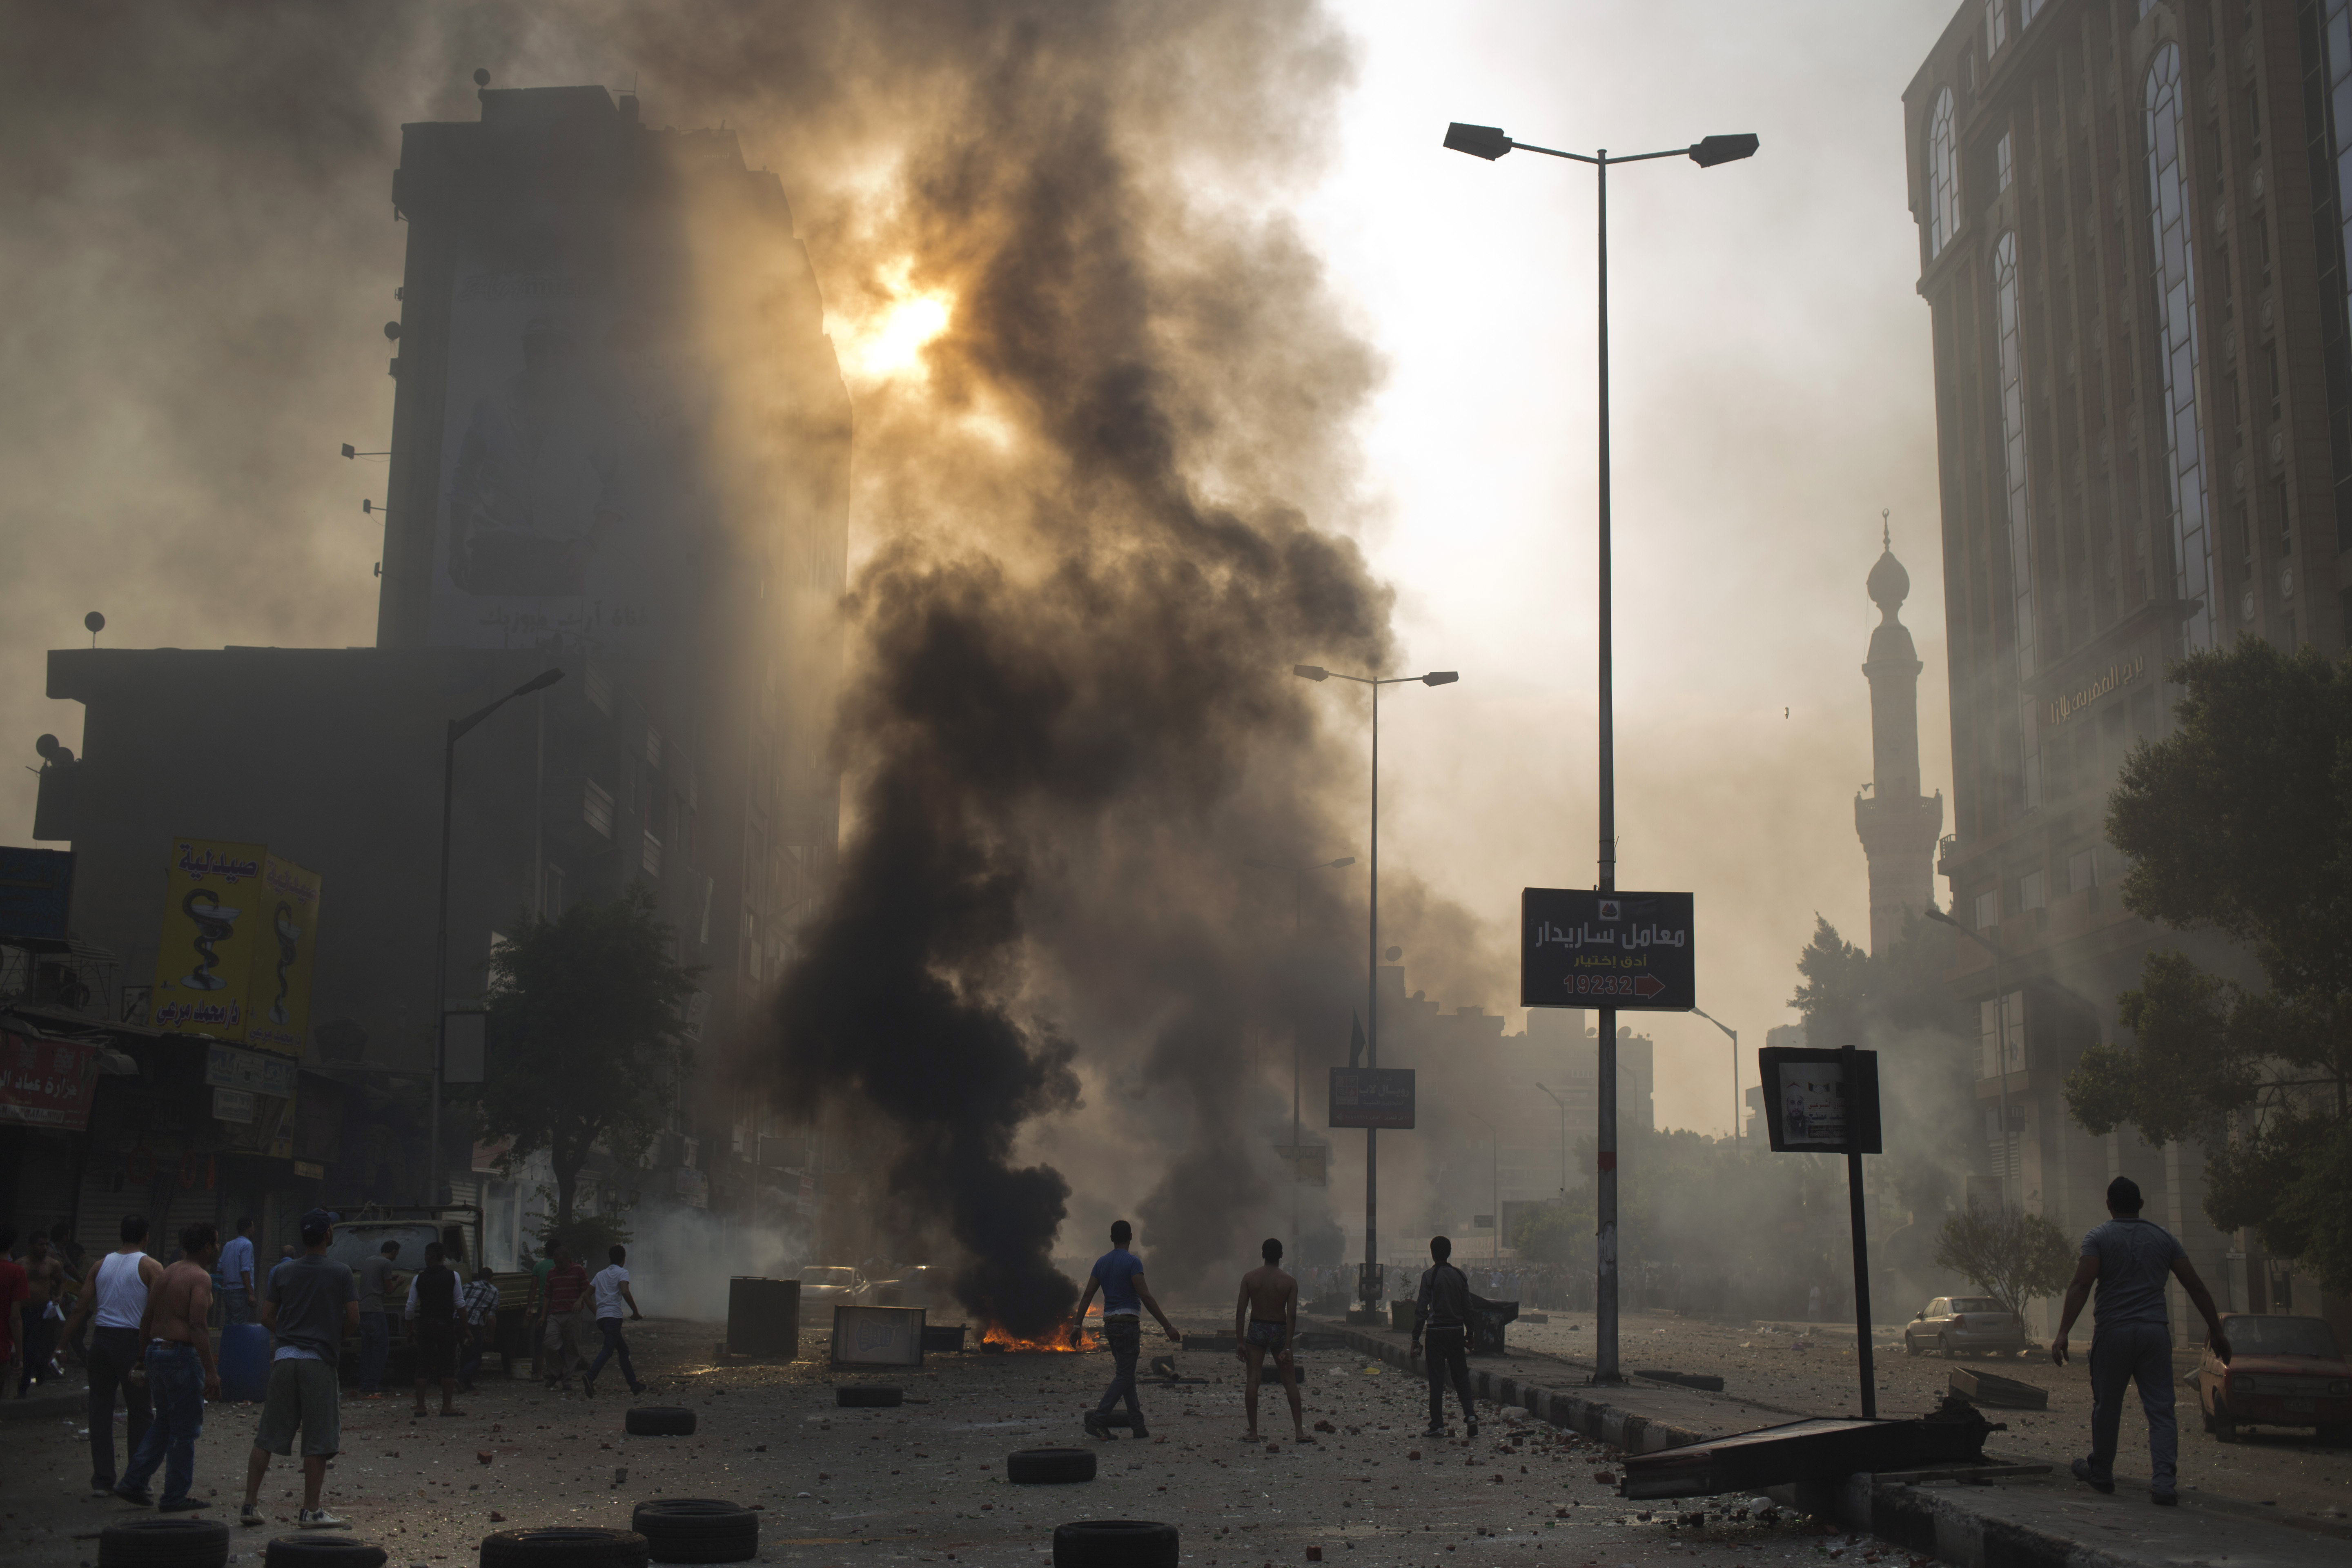 Supporters and opponents of Egypt's ousted Islamist President Mohamed Morsi clash in Cairo, Oct. 6, 2013.